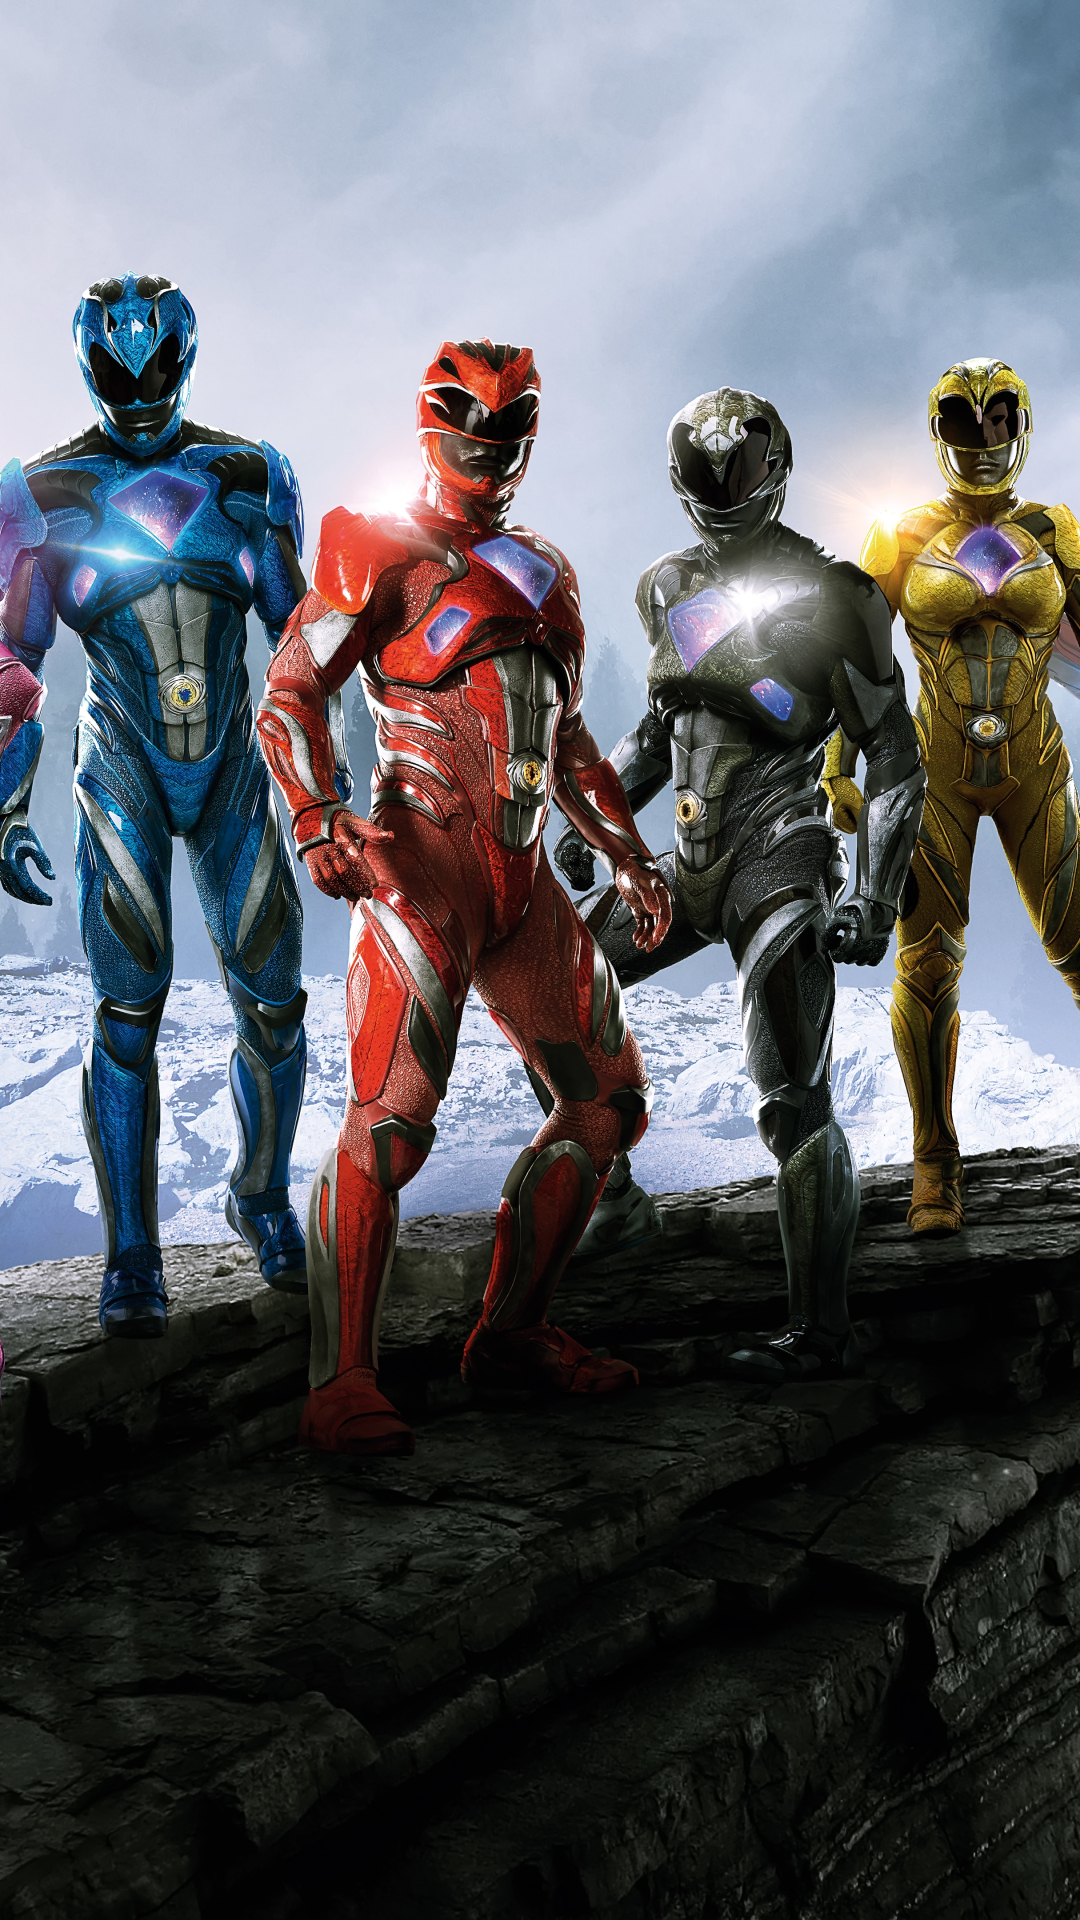 Movie Power Rangers 2017 1080x1920 Wallpaper Id 674974 Mobile